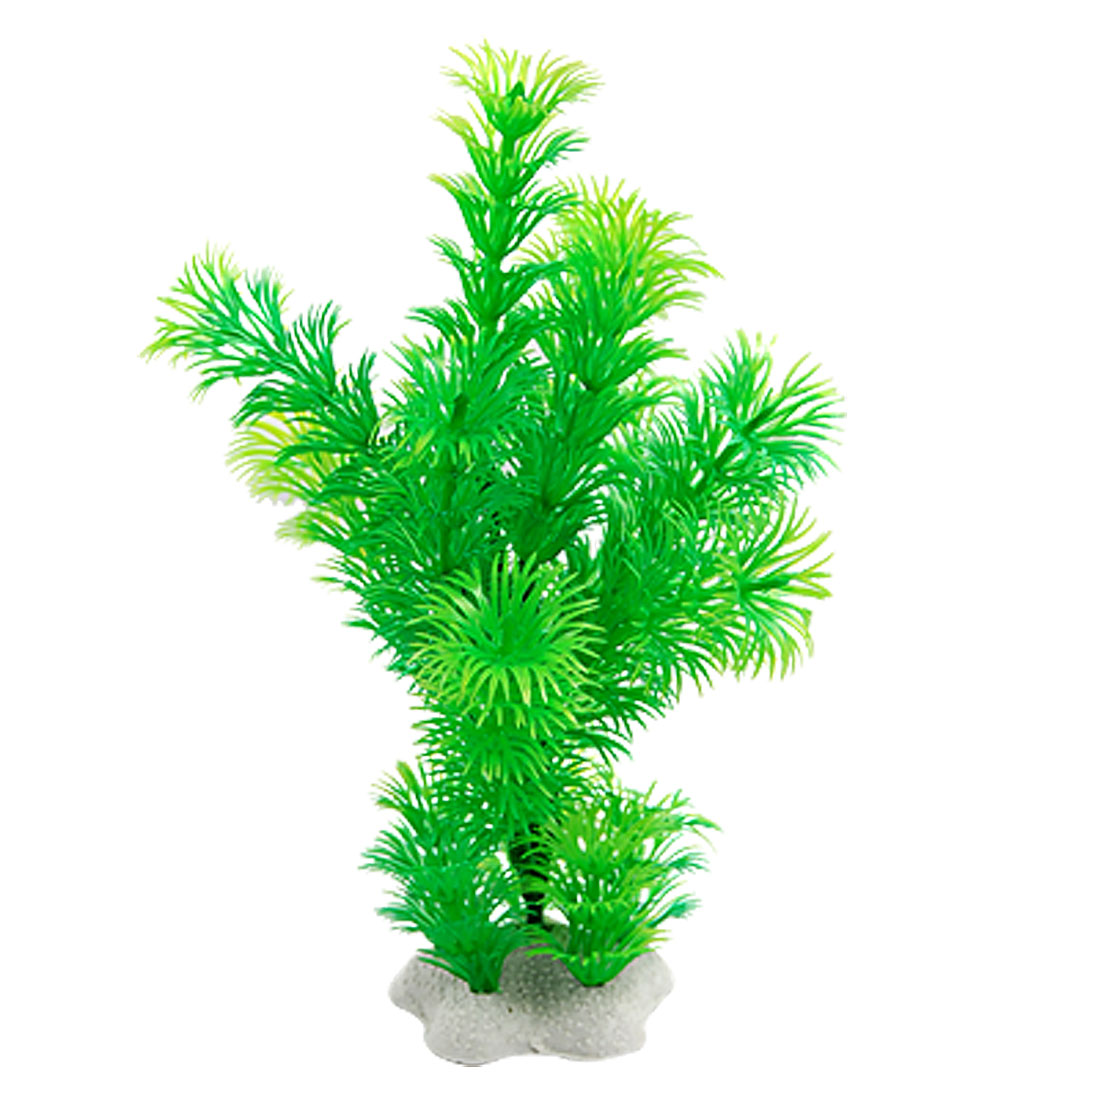 "Fish Tank 7.5"" Height Green Plastic Water Plant Grass Decoration"